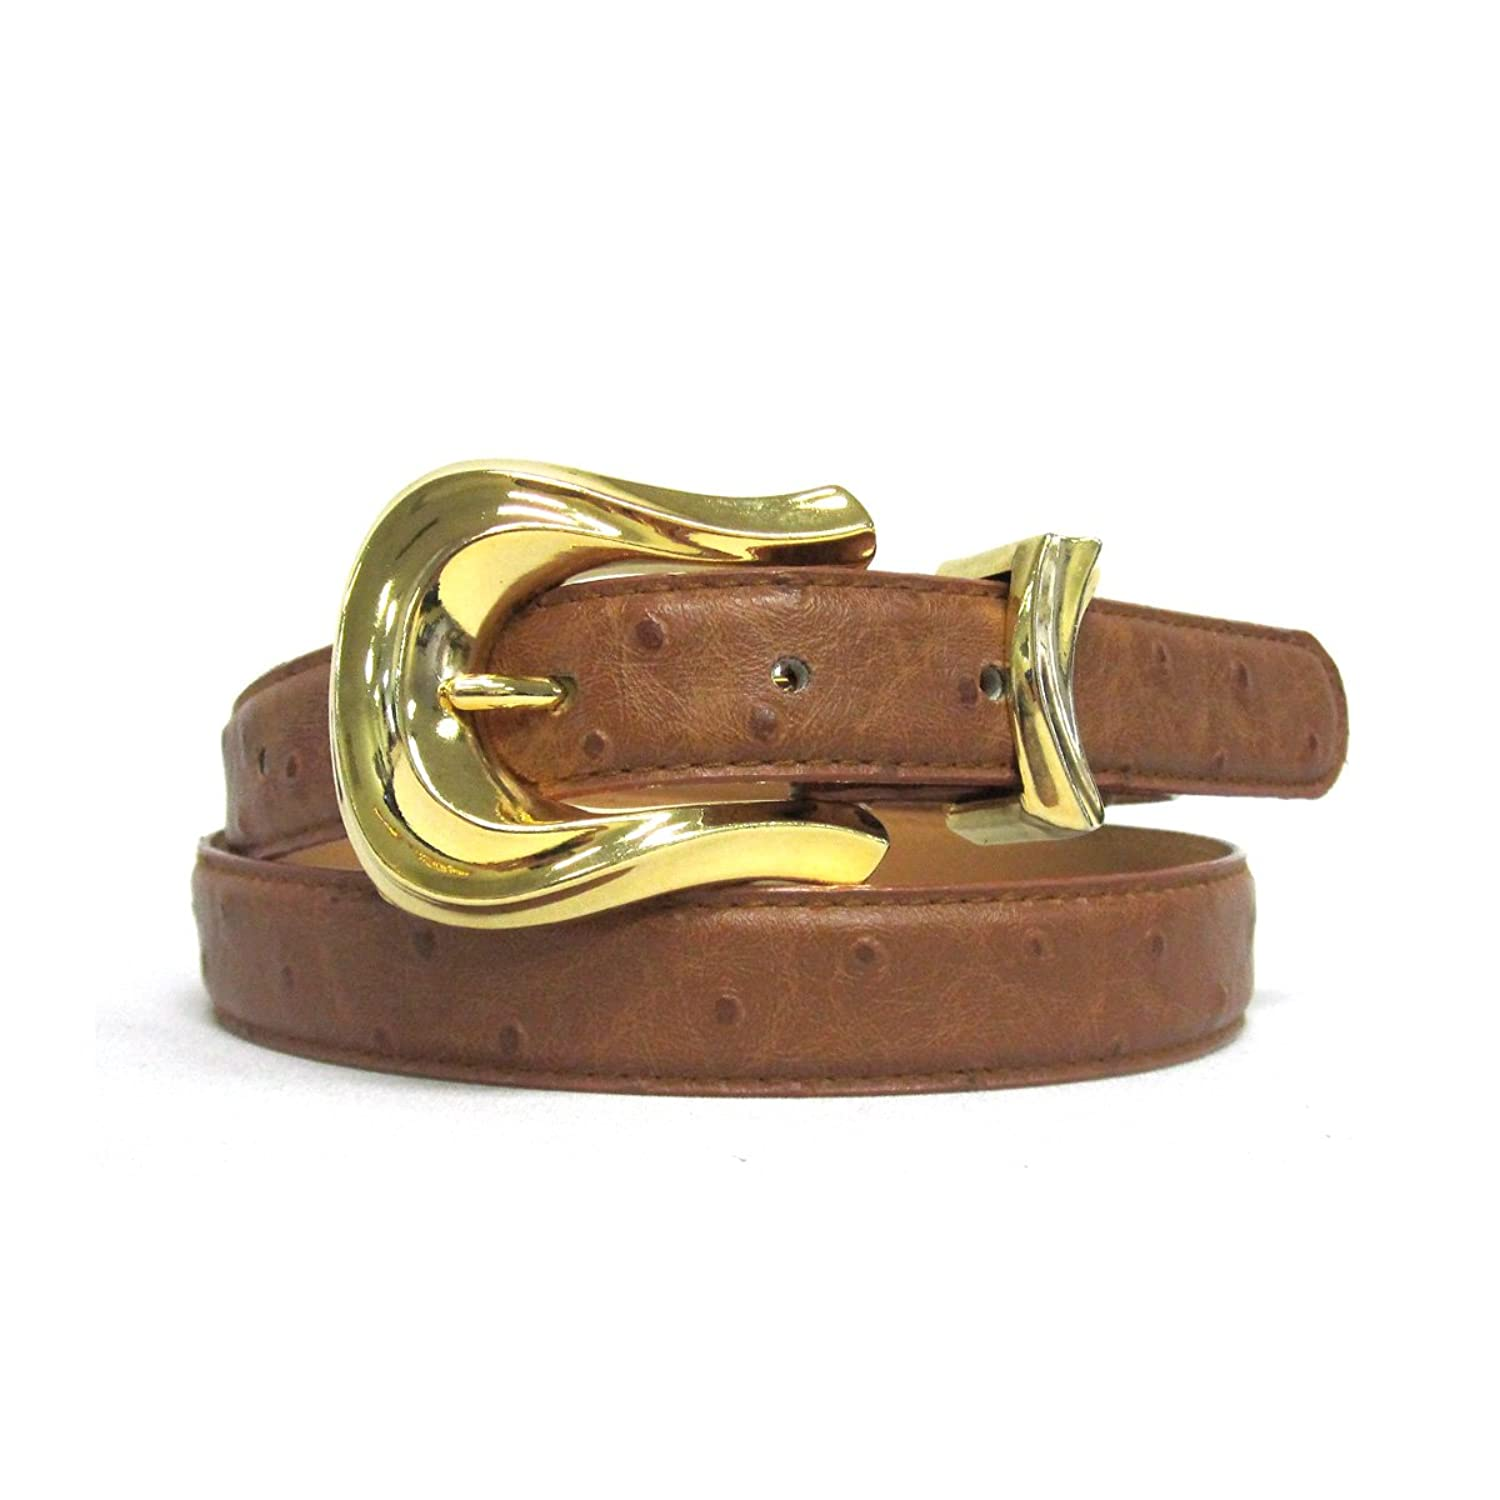 "1"" Women's Gold Plated Buckle on Quality Ostrich Embossed Leatherette Belt Strap"